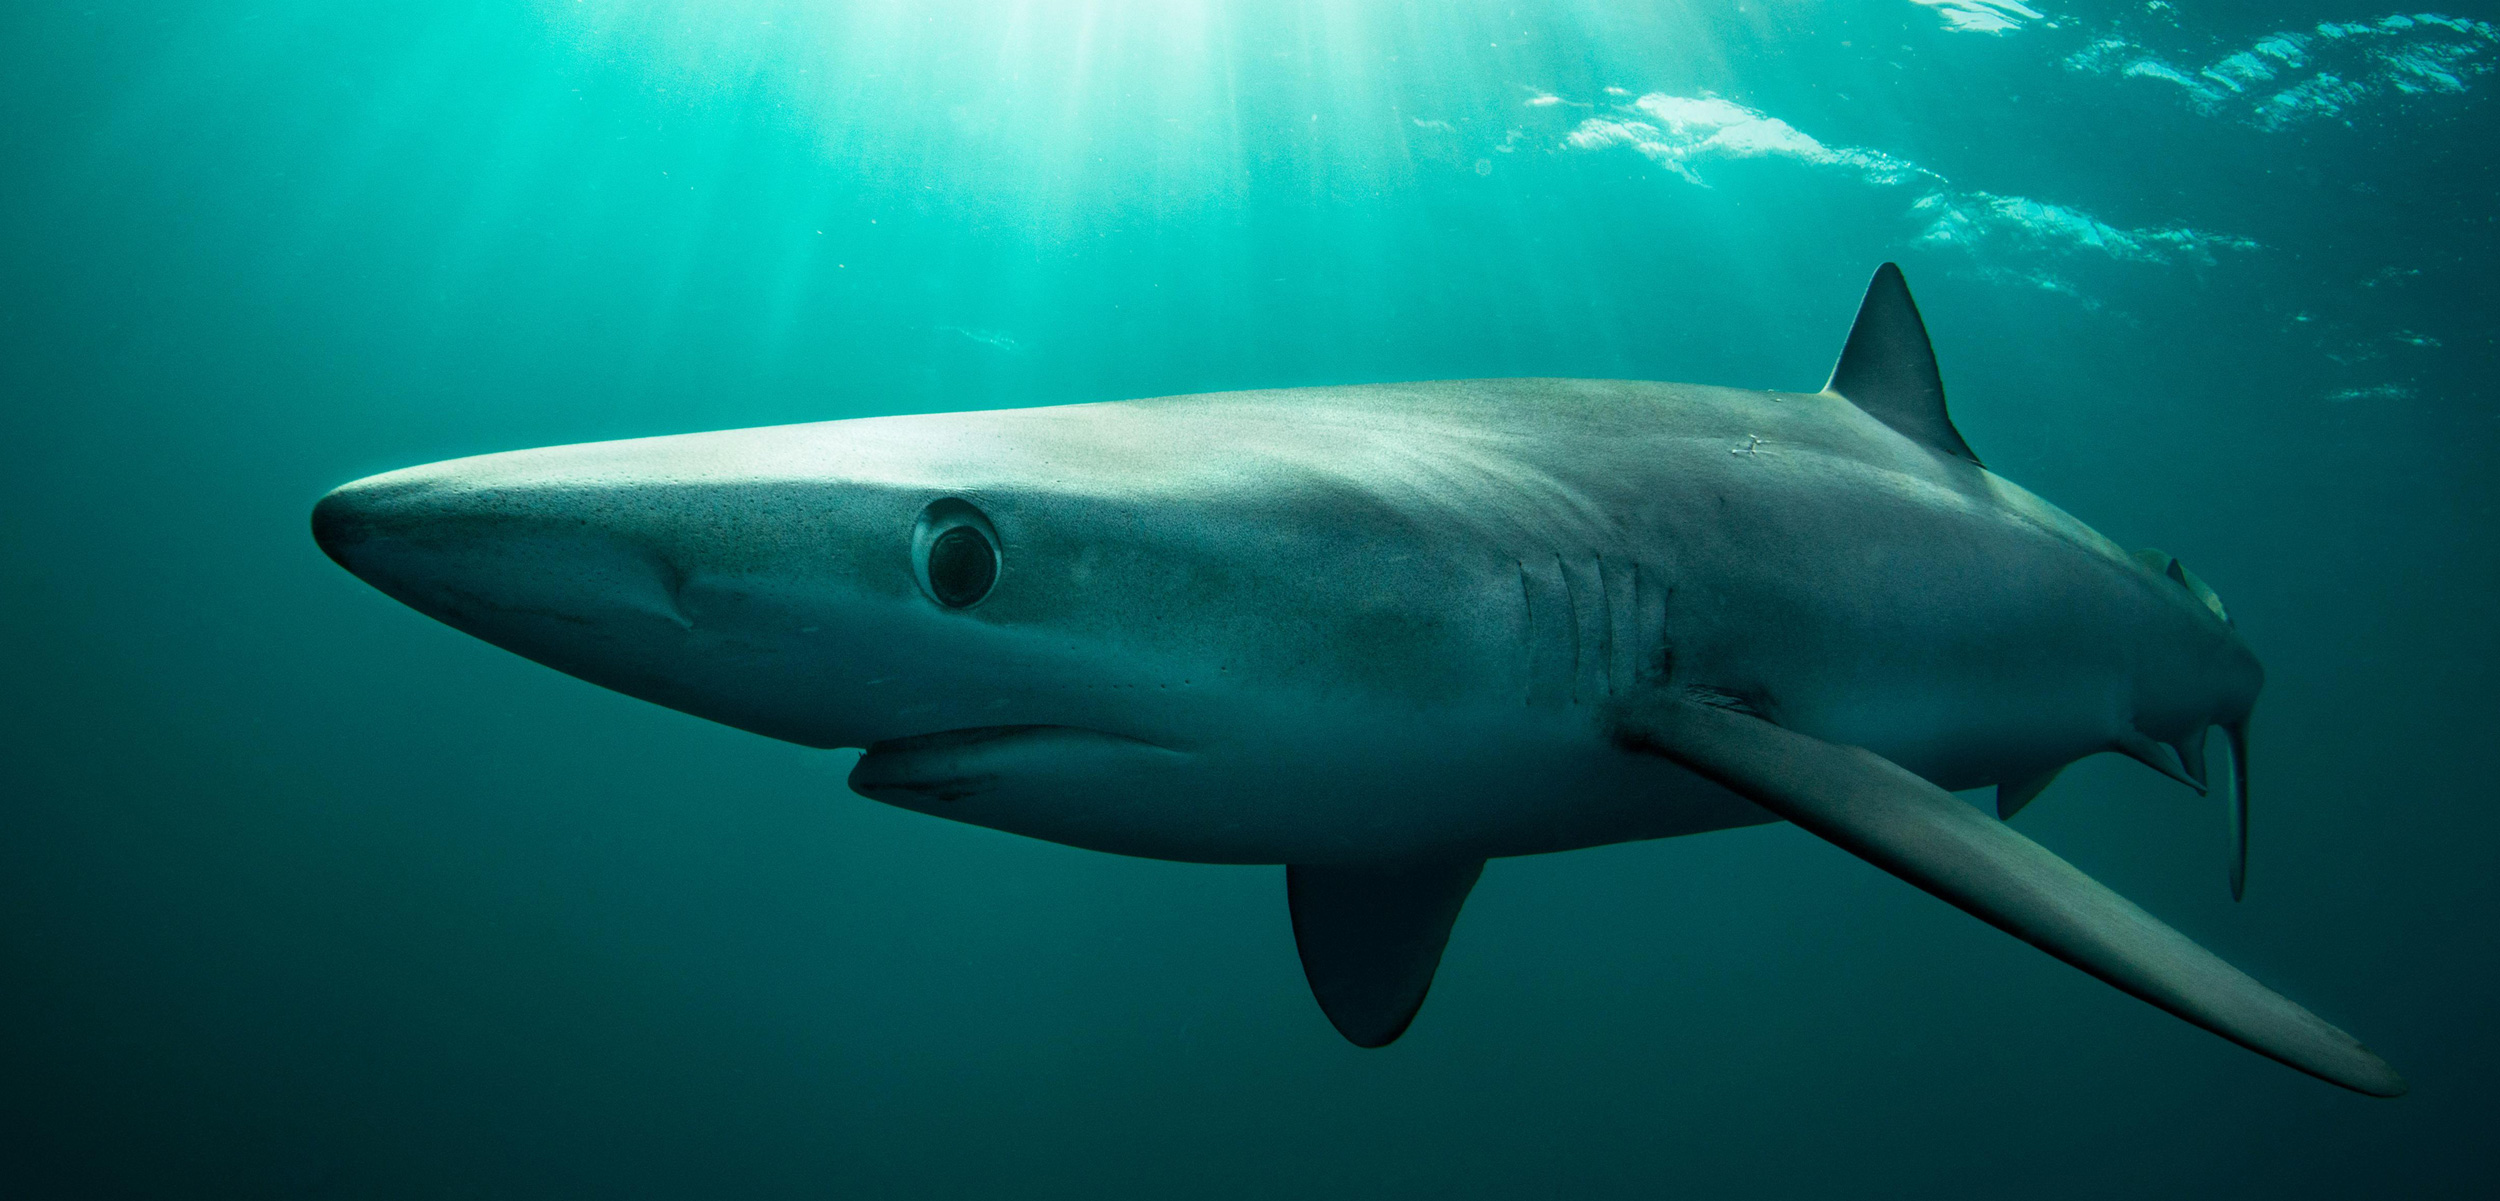 a blue shark underwater